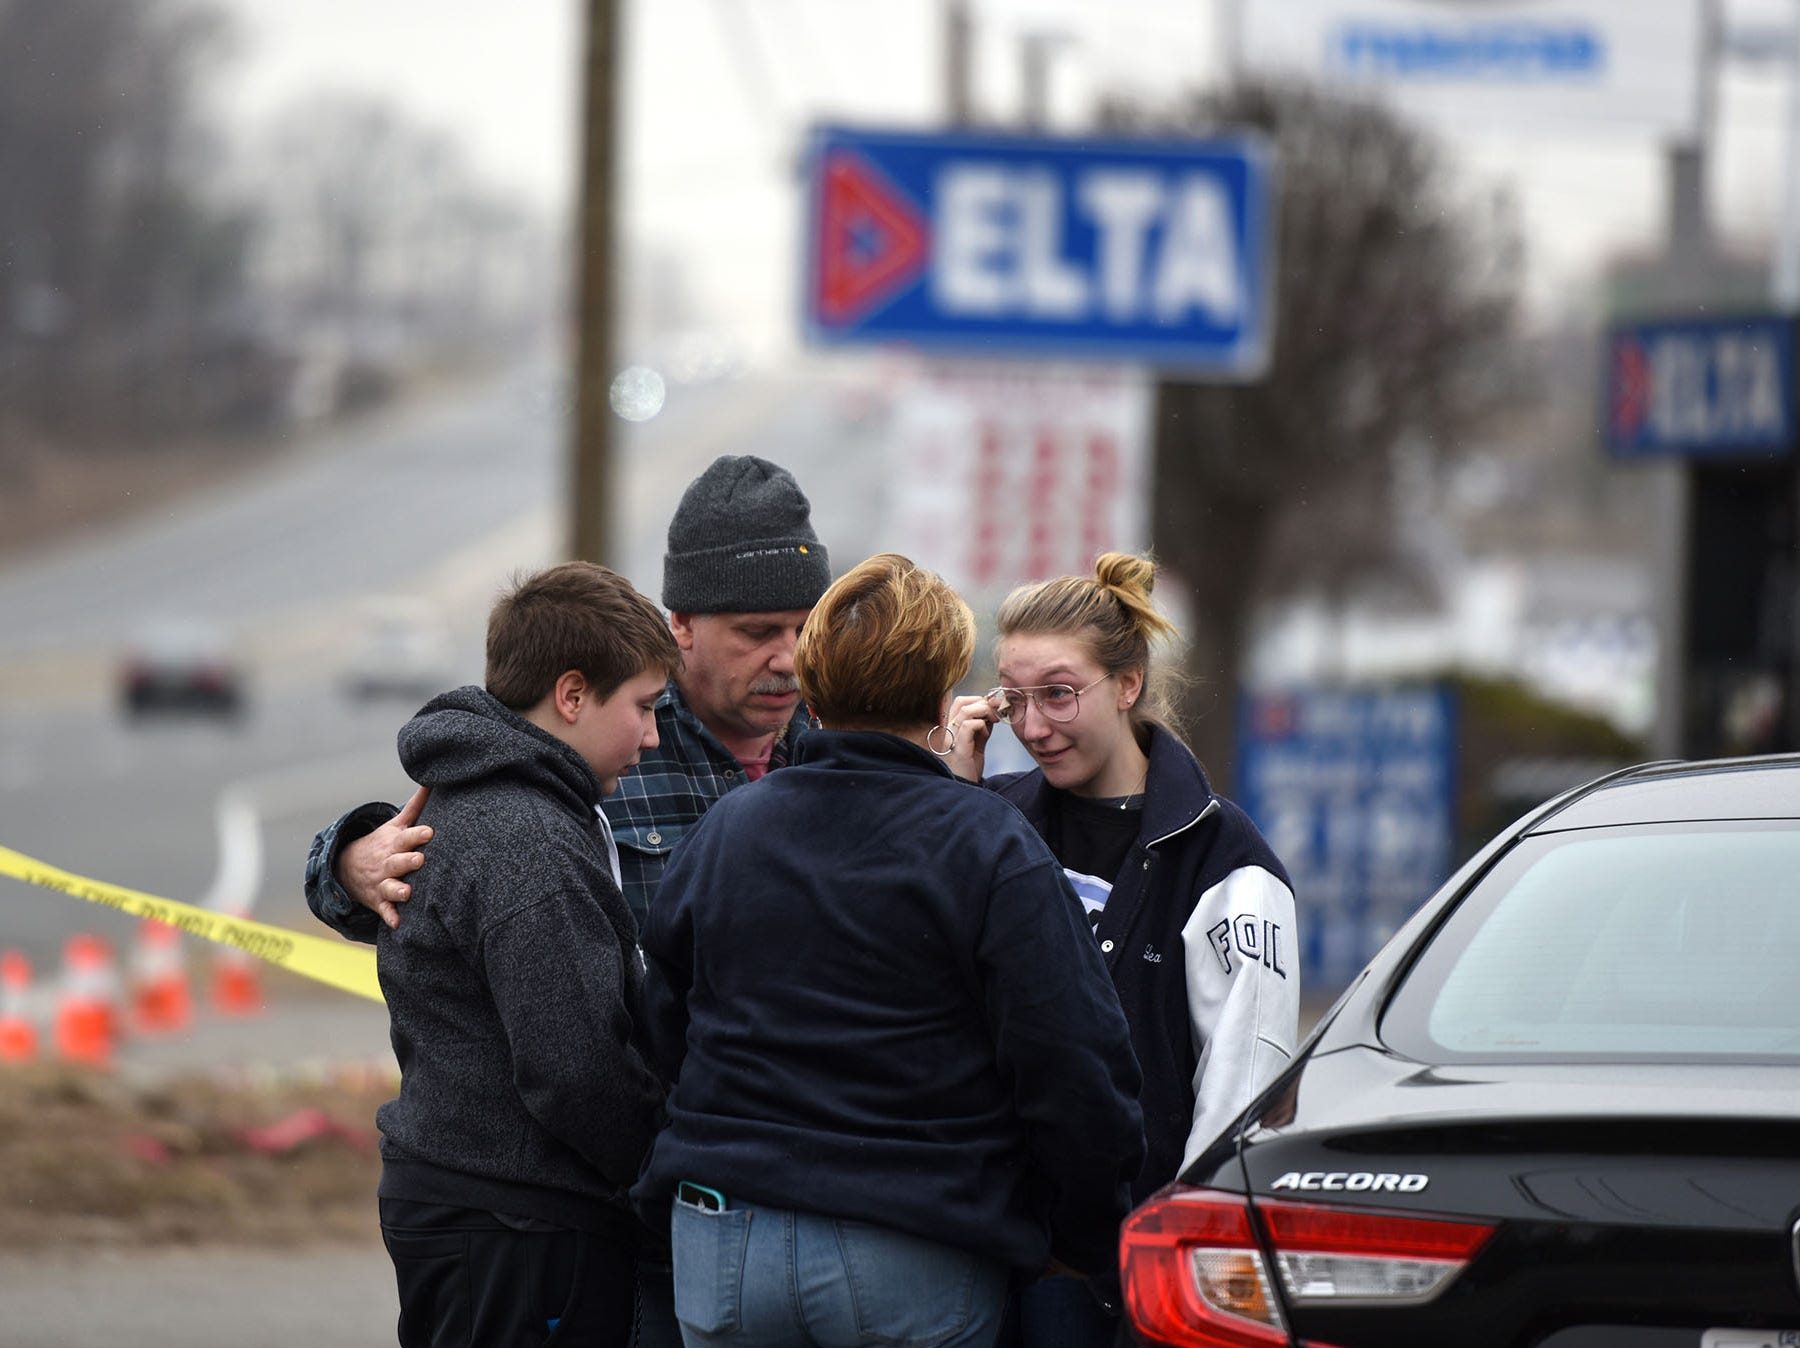 Mourners came to the Delta Station on Rt. 23 in Wayne on Wednesday, February 20, 2019 where Jon and Luke Warbeck and Lovedeep Fatra died when a car crashed into the Delta station on Tuesday.